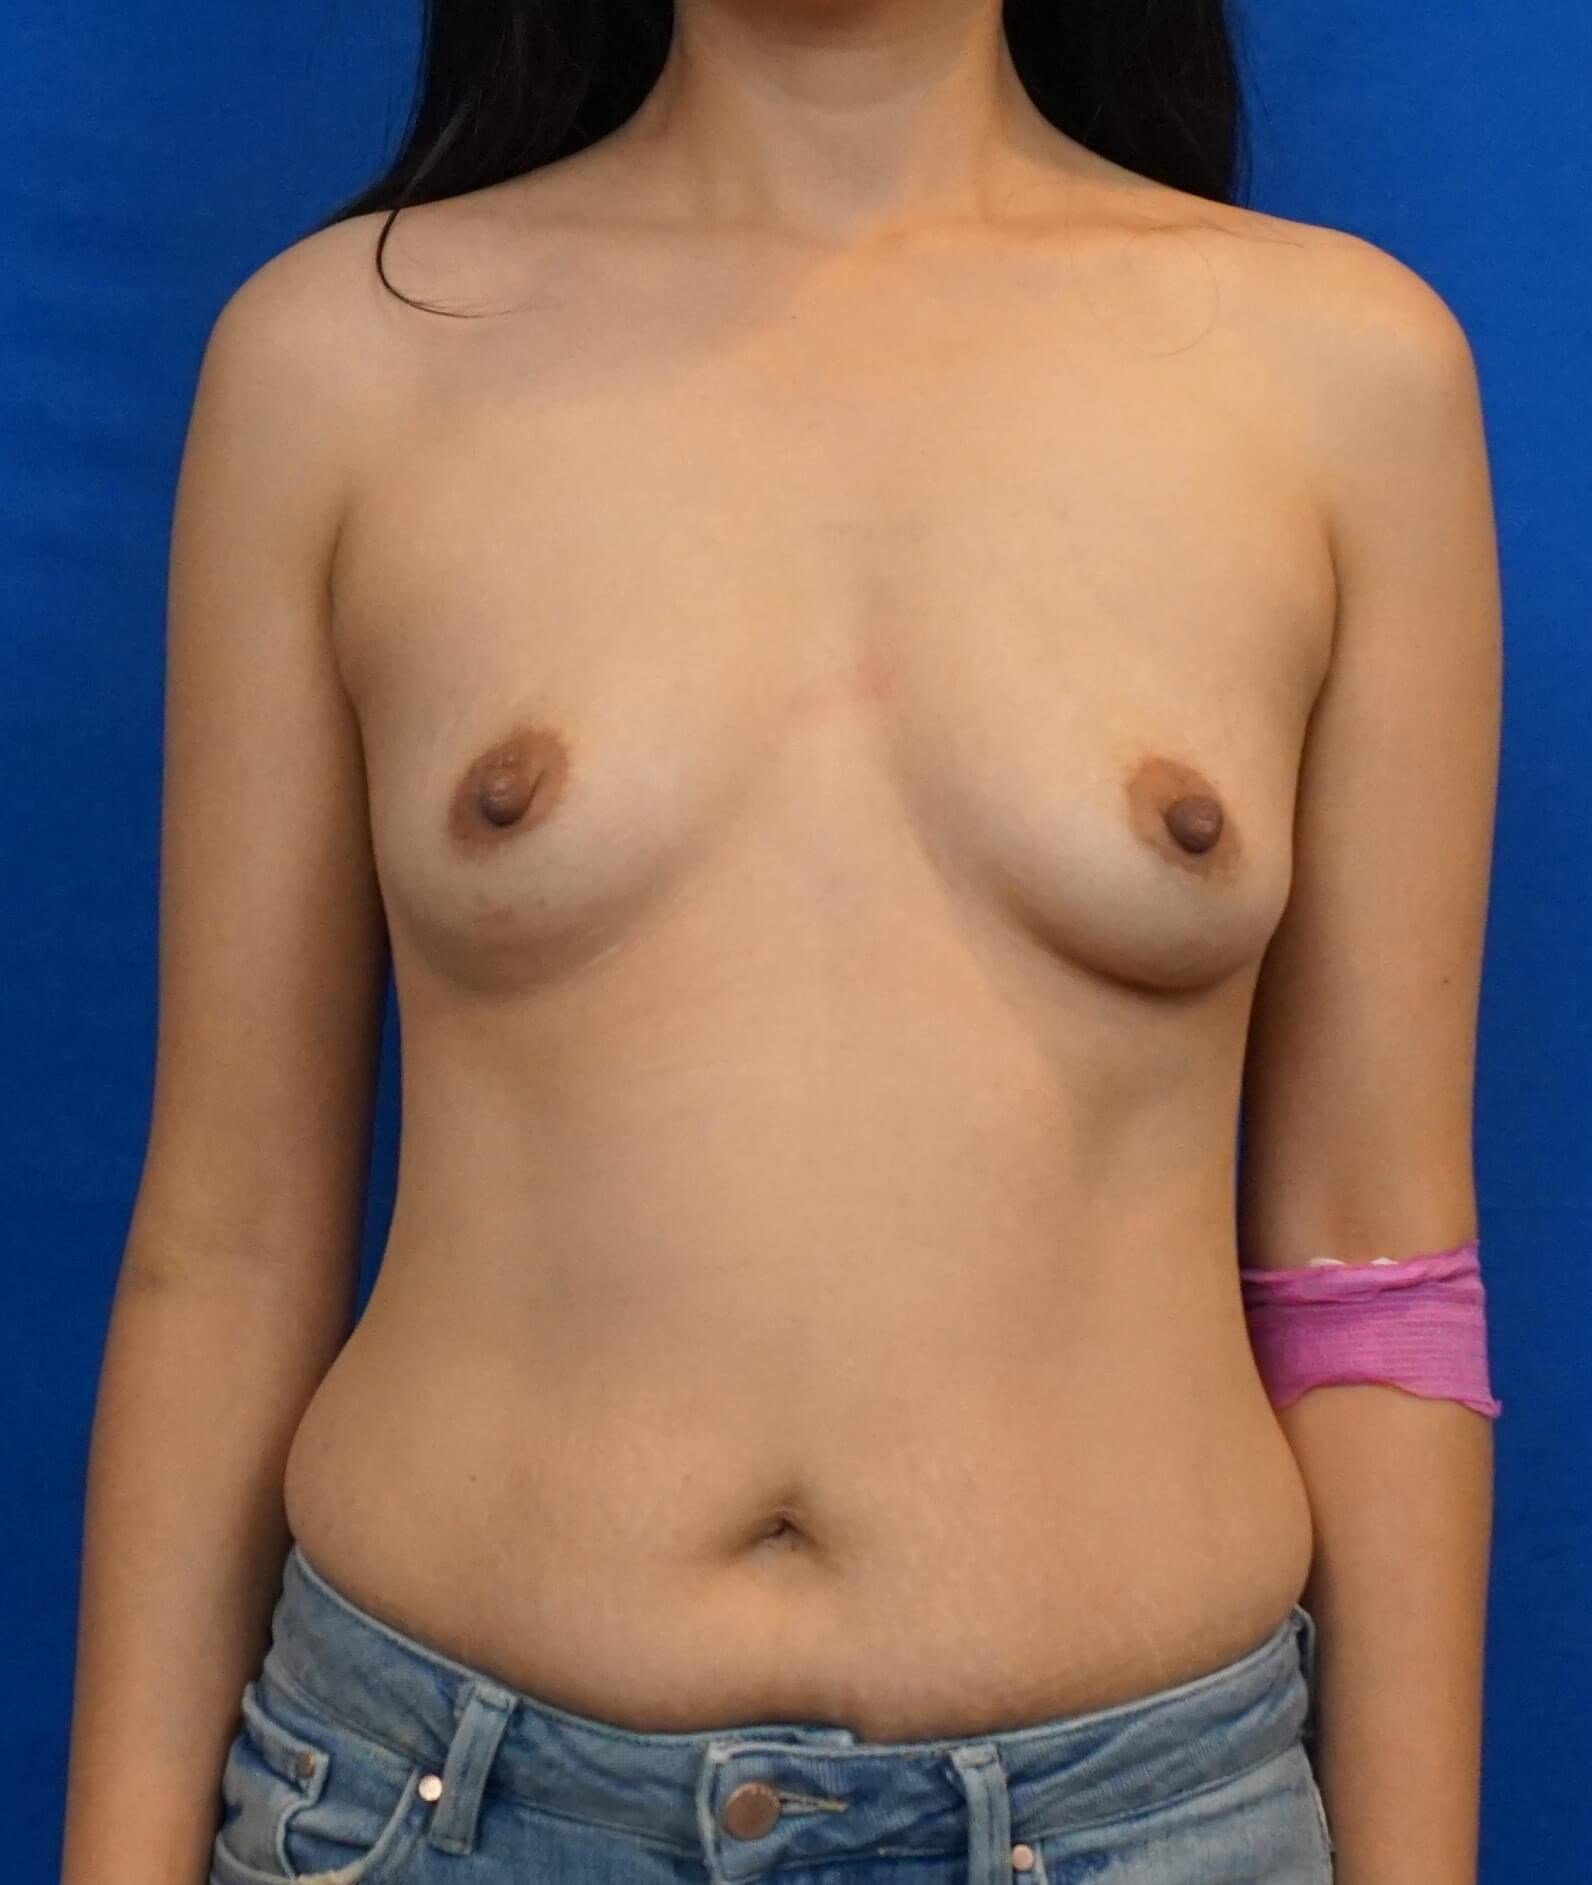 Asian Breast Augmentation Before Breast Implants